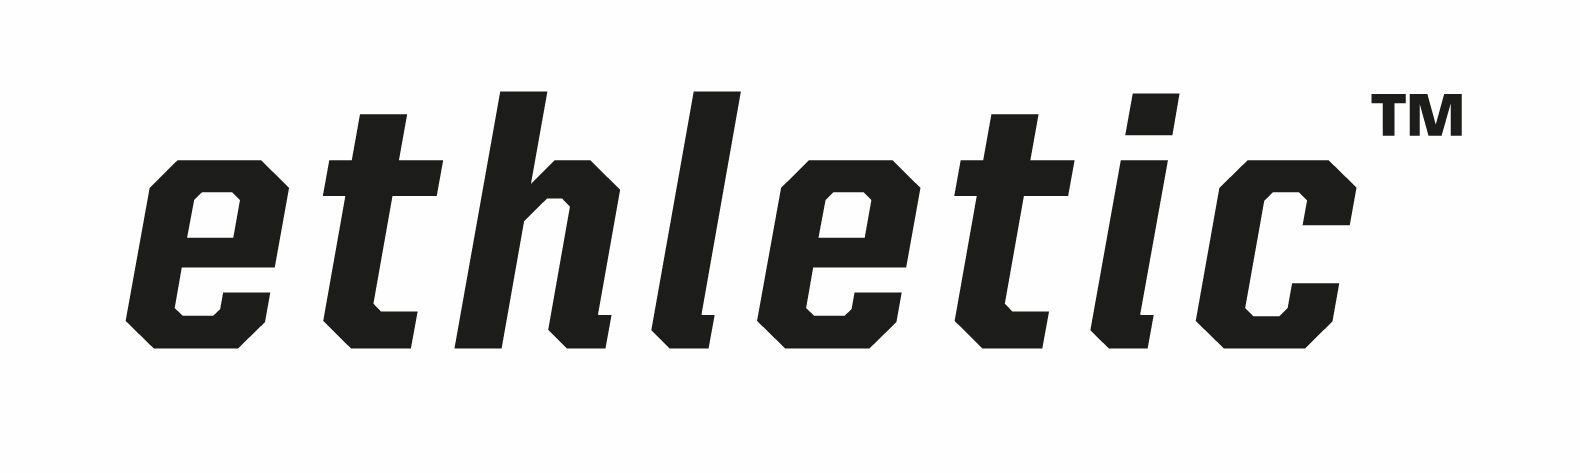 logo ethletic